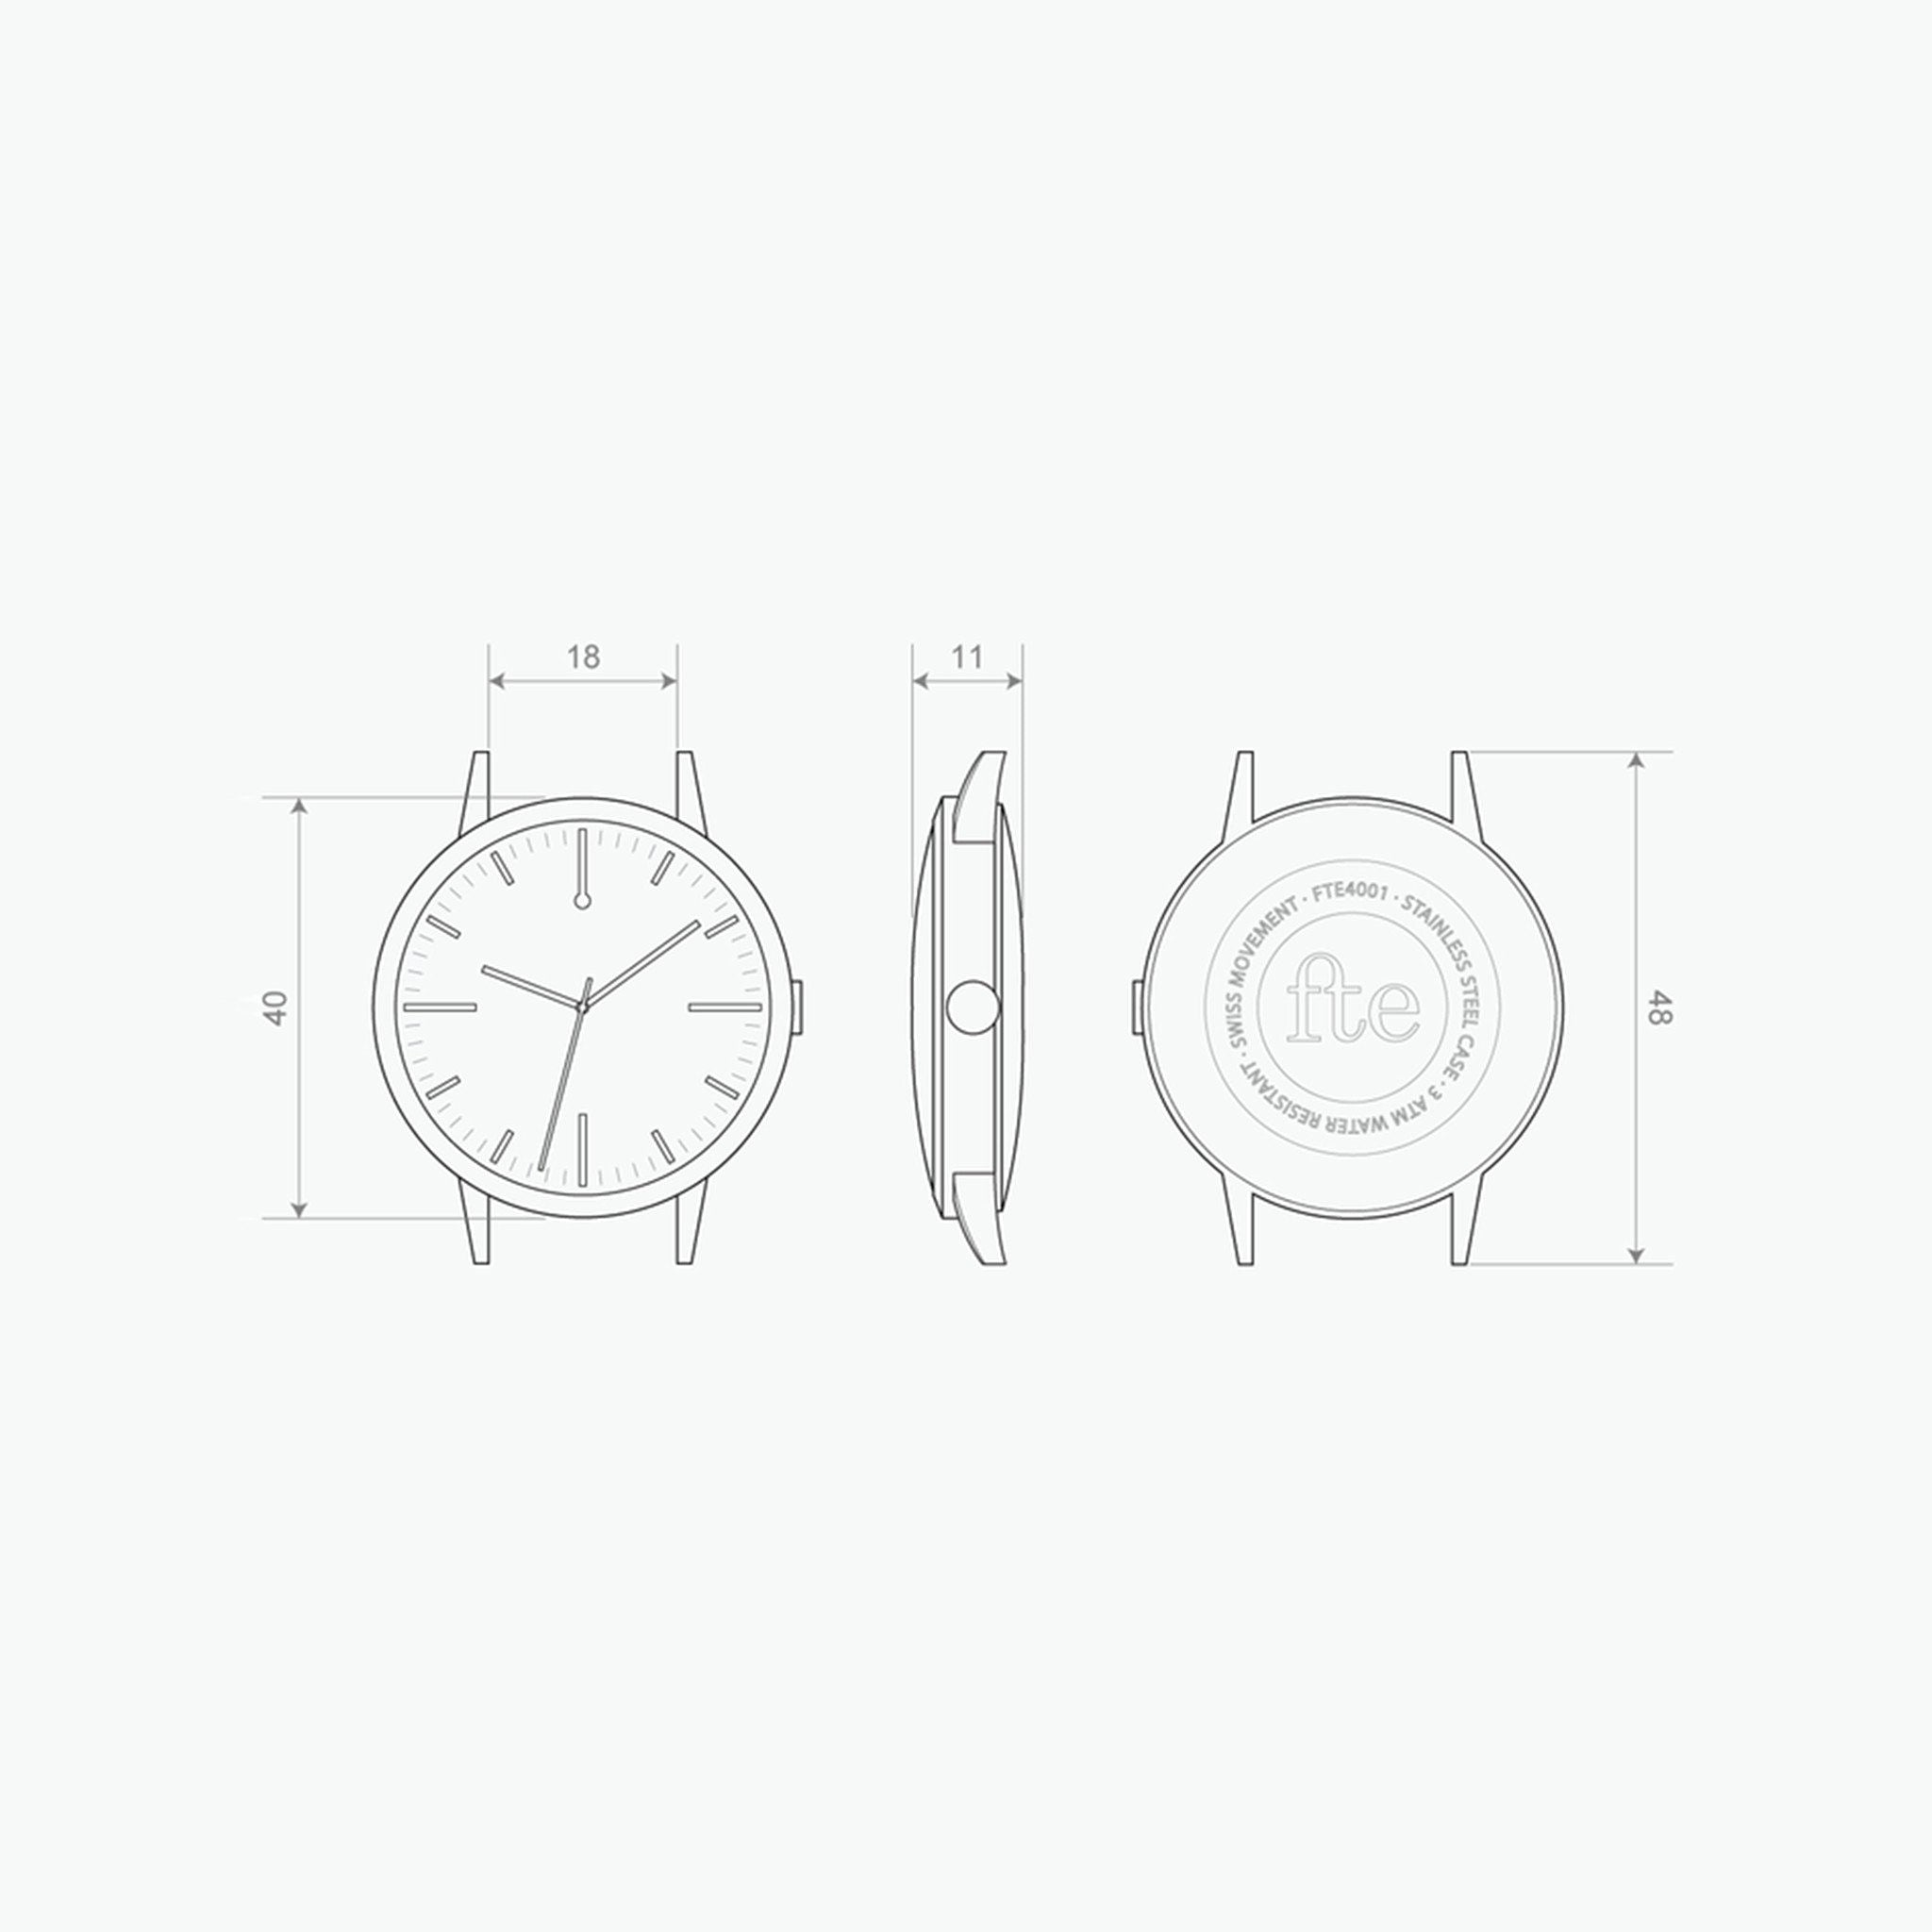 Freedom To Exist - Watch Drawing - 40mm - 40 Edition